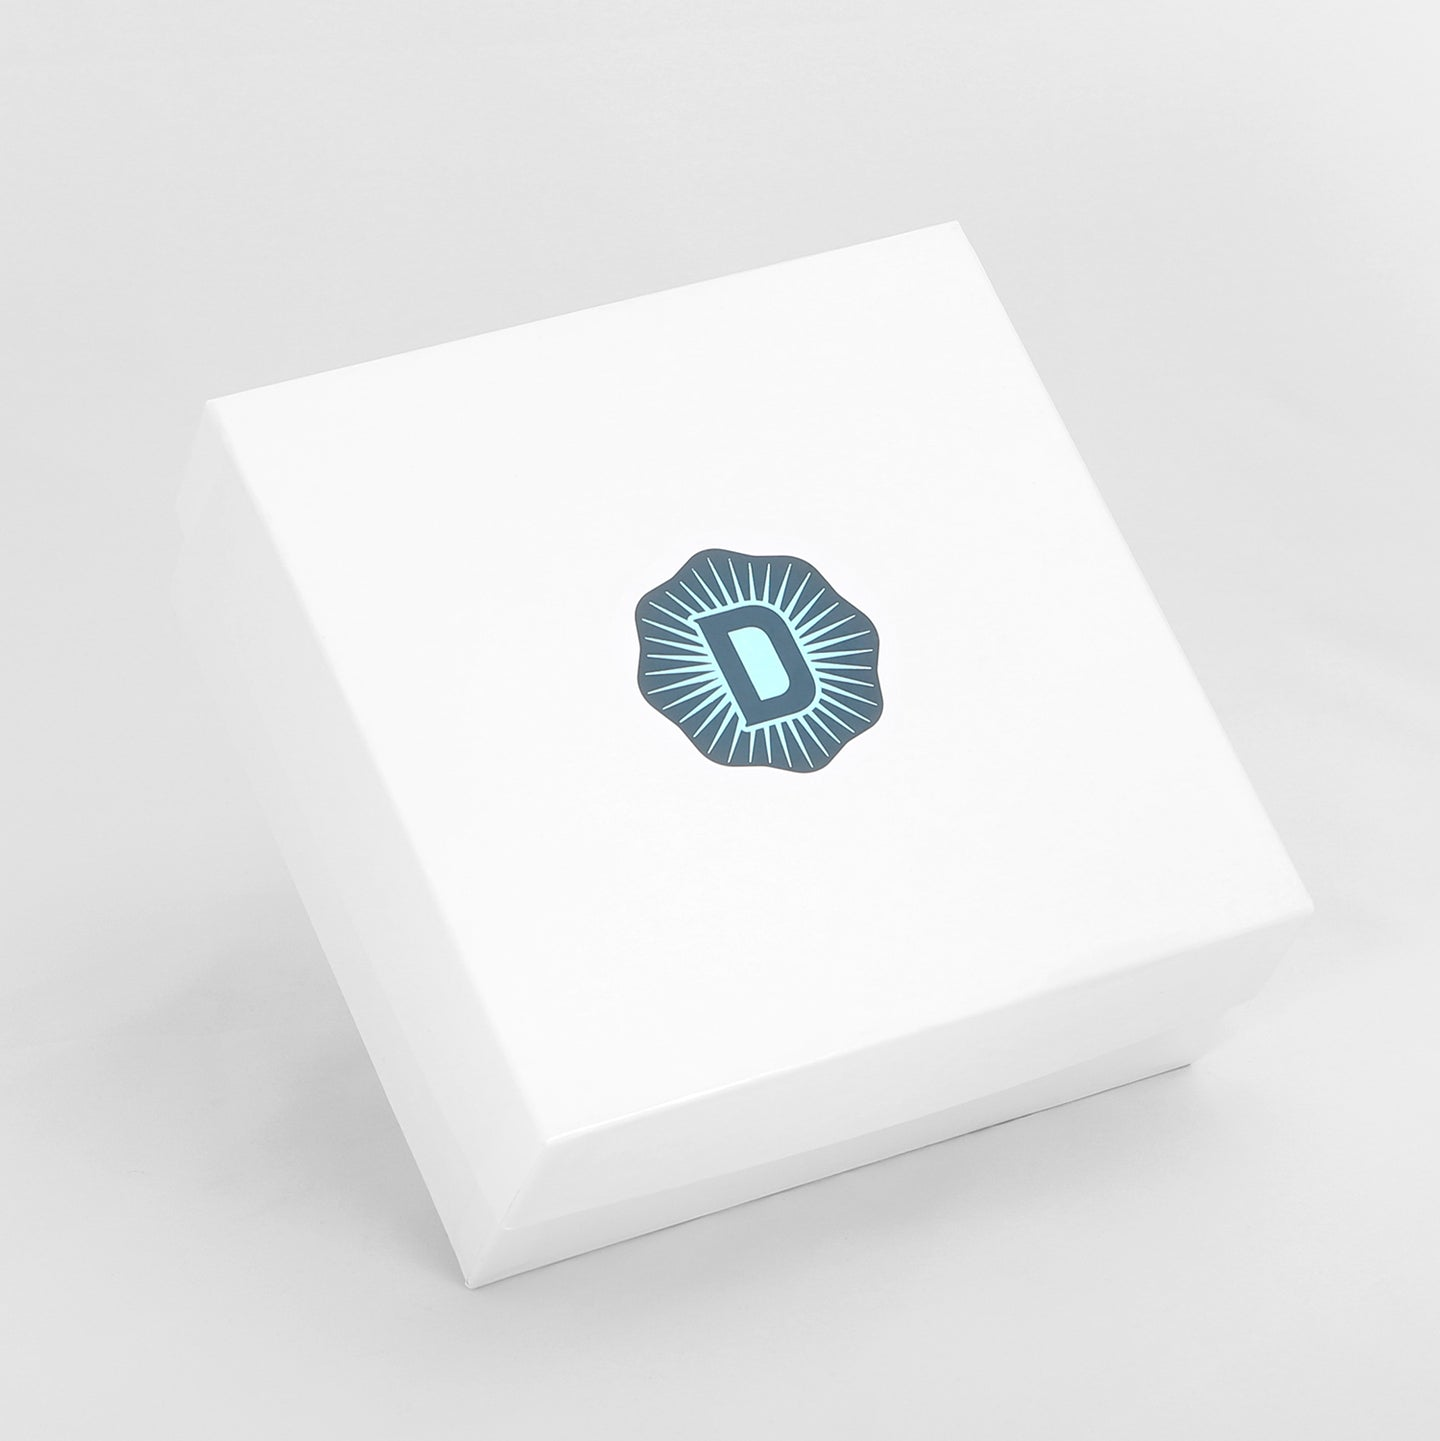 White gift box with Deiter's Chocolates logo on the lid